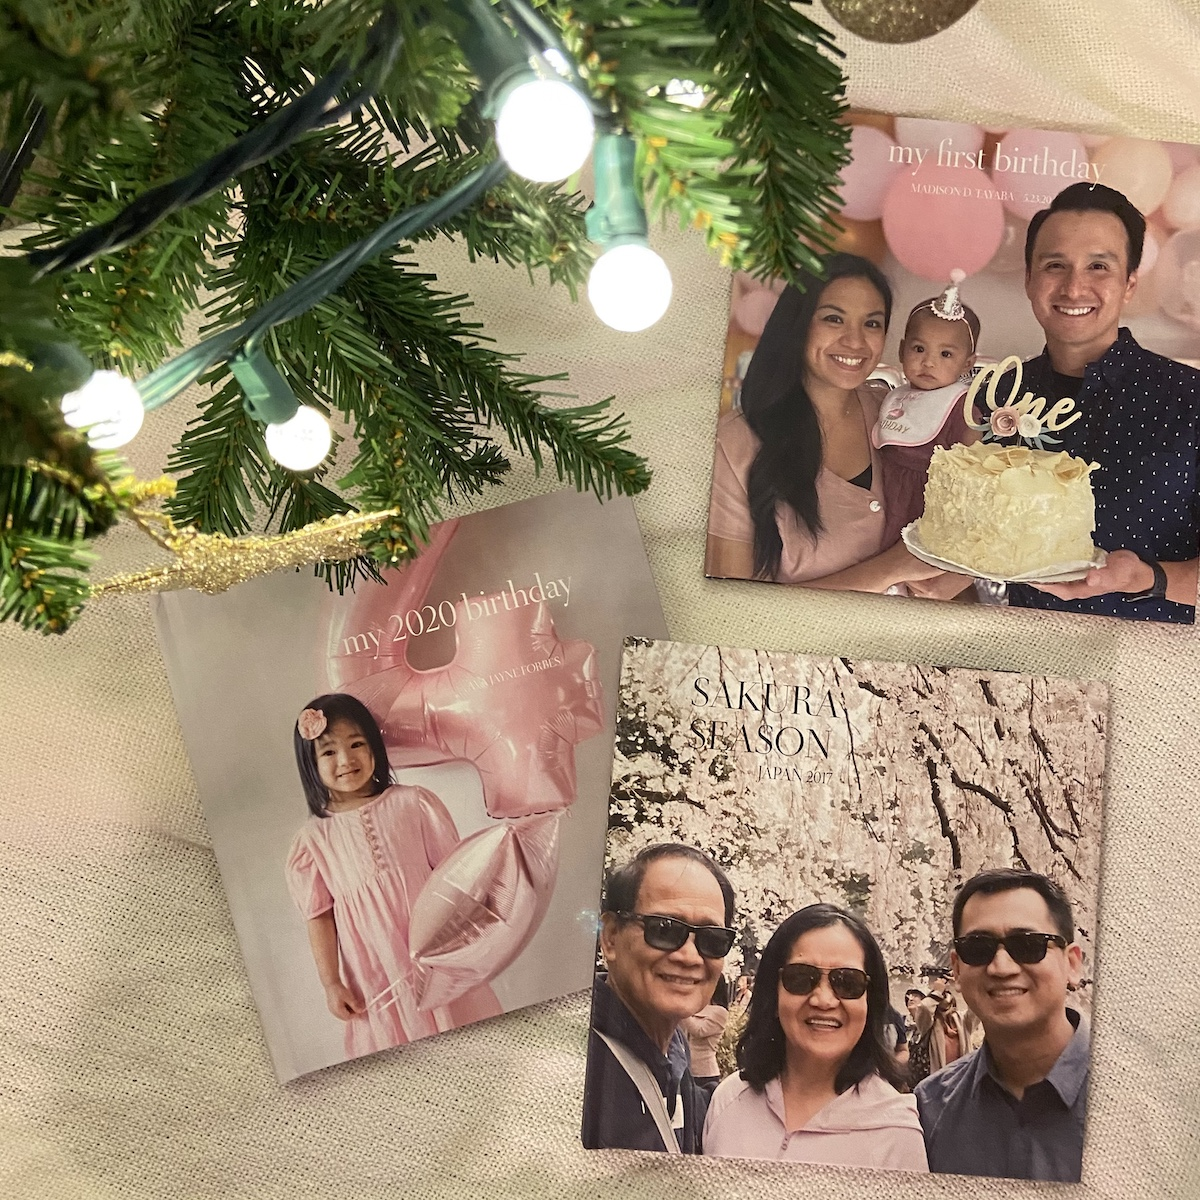 Multiple Artifact Uprising Photo-Wrapped Hardcover books commemorating birthdays resting under a Christmas tree with bulb lights